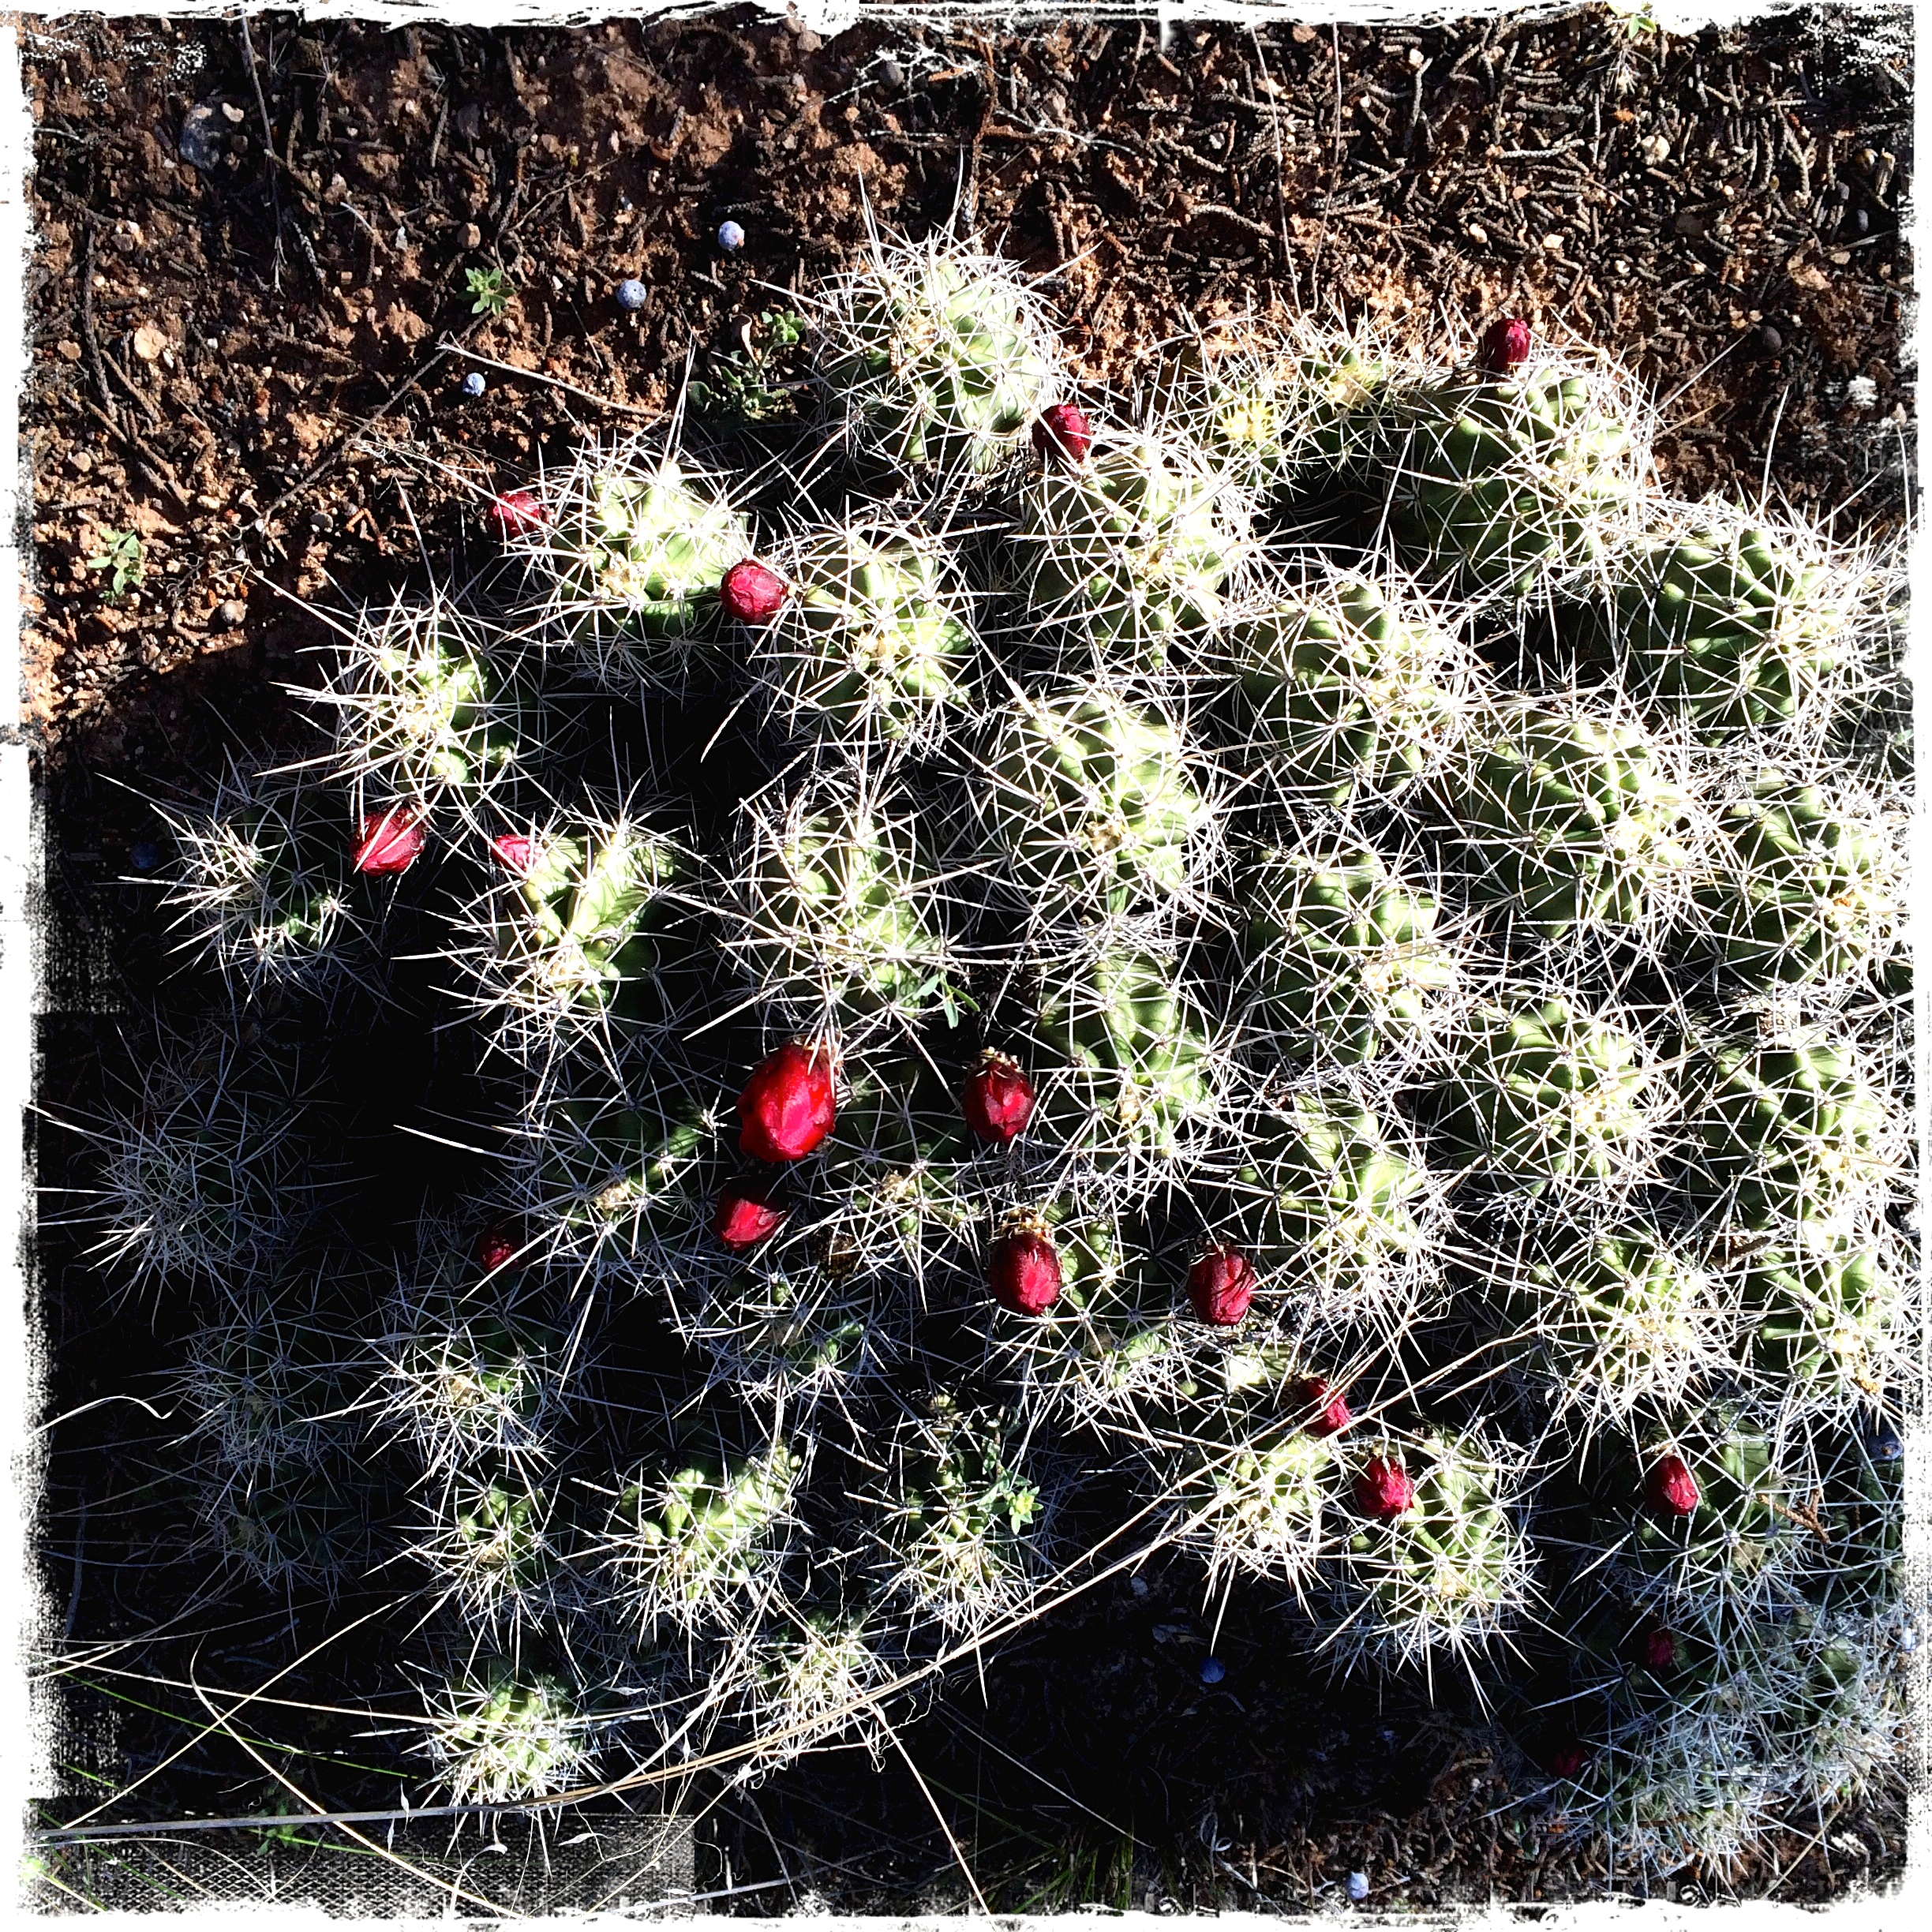 Claret cup cactus in the woods are full of buds from all the rain.